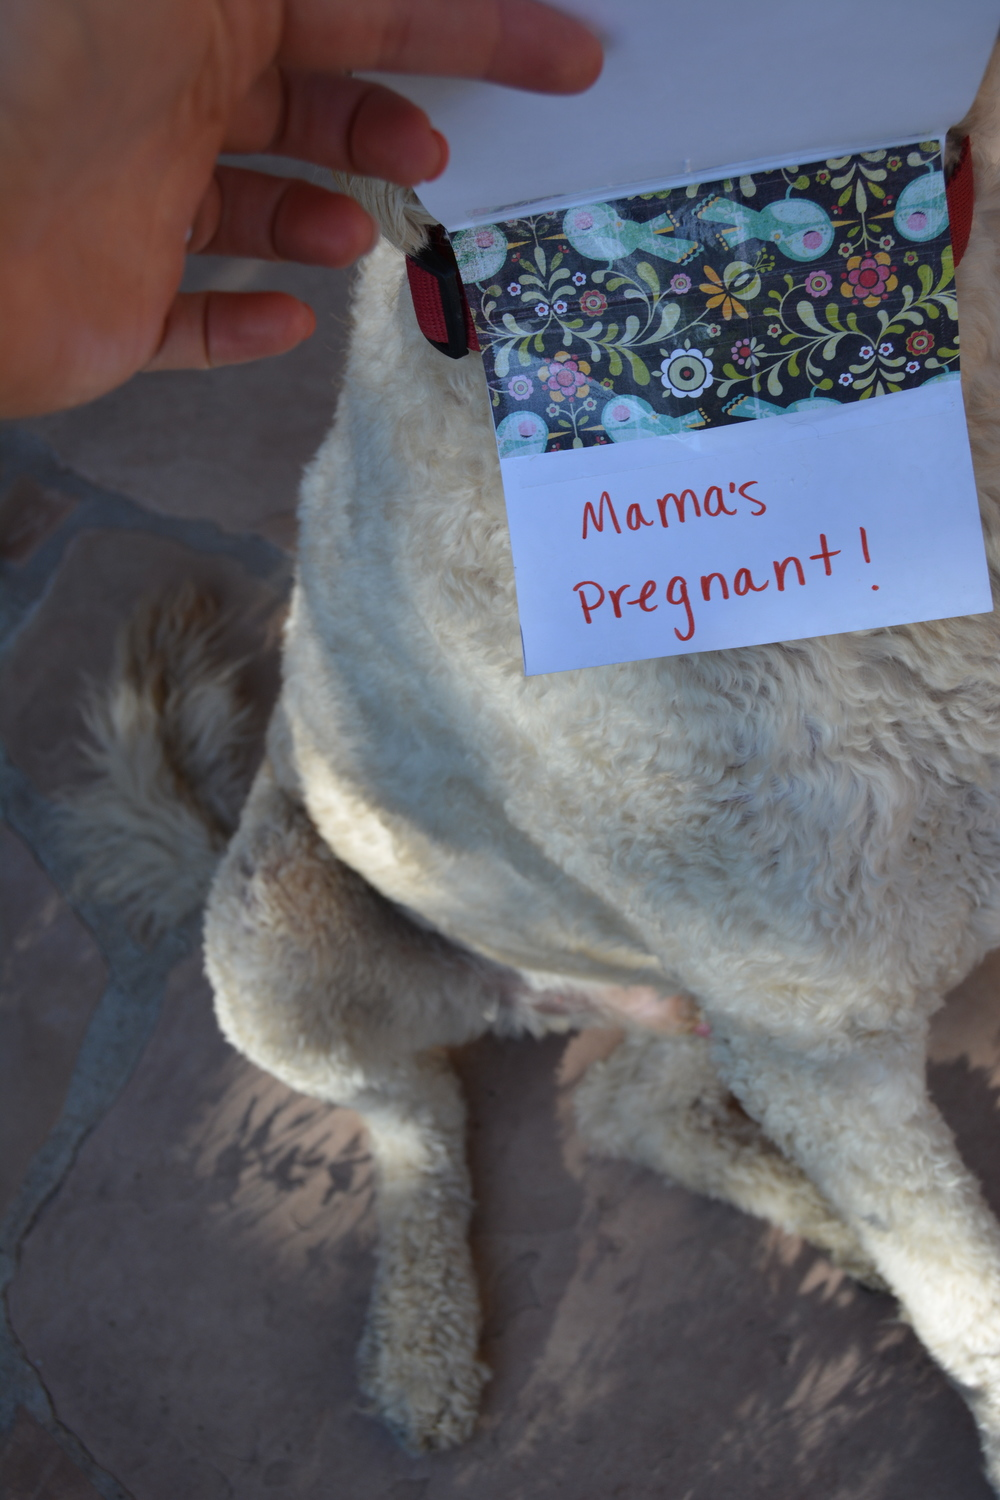 Cute way to tell hubby you're pregnant!